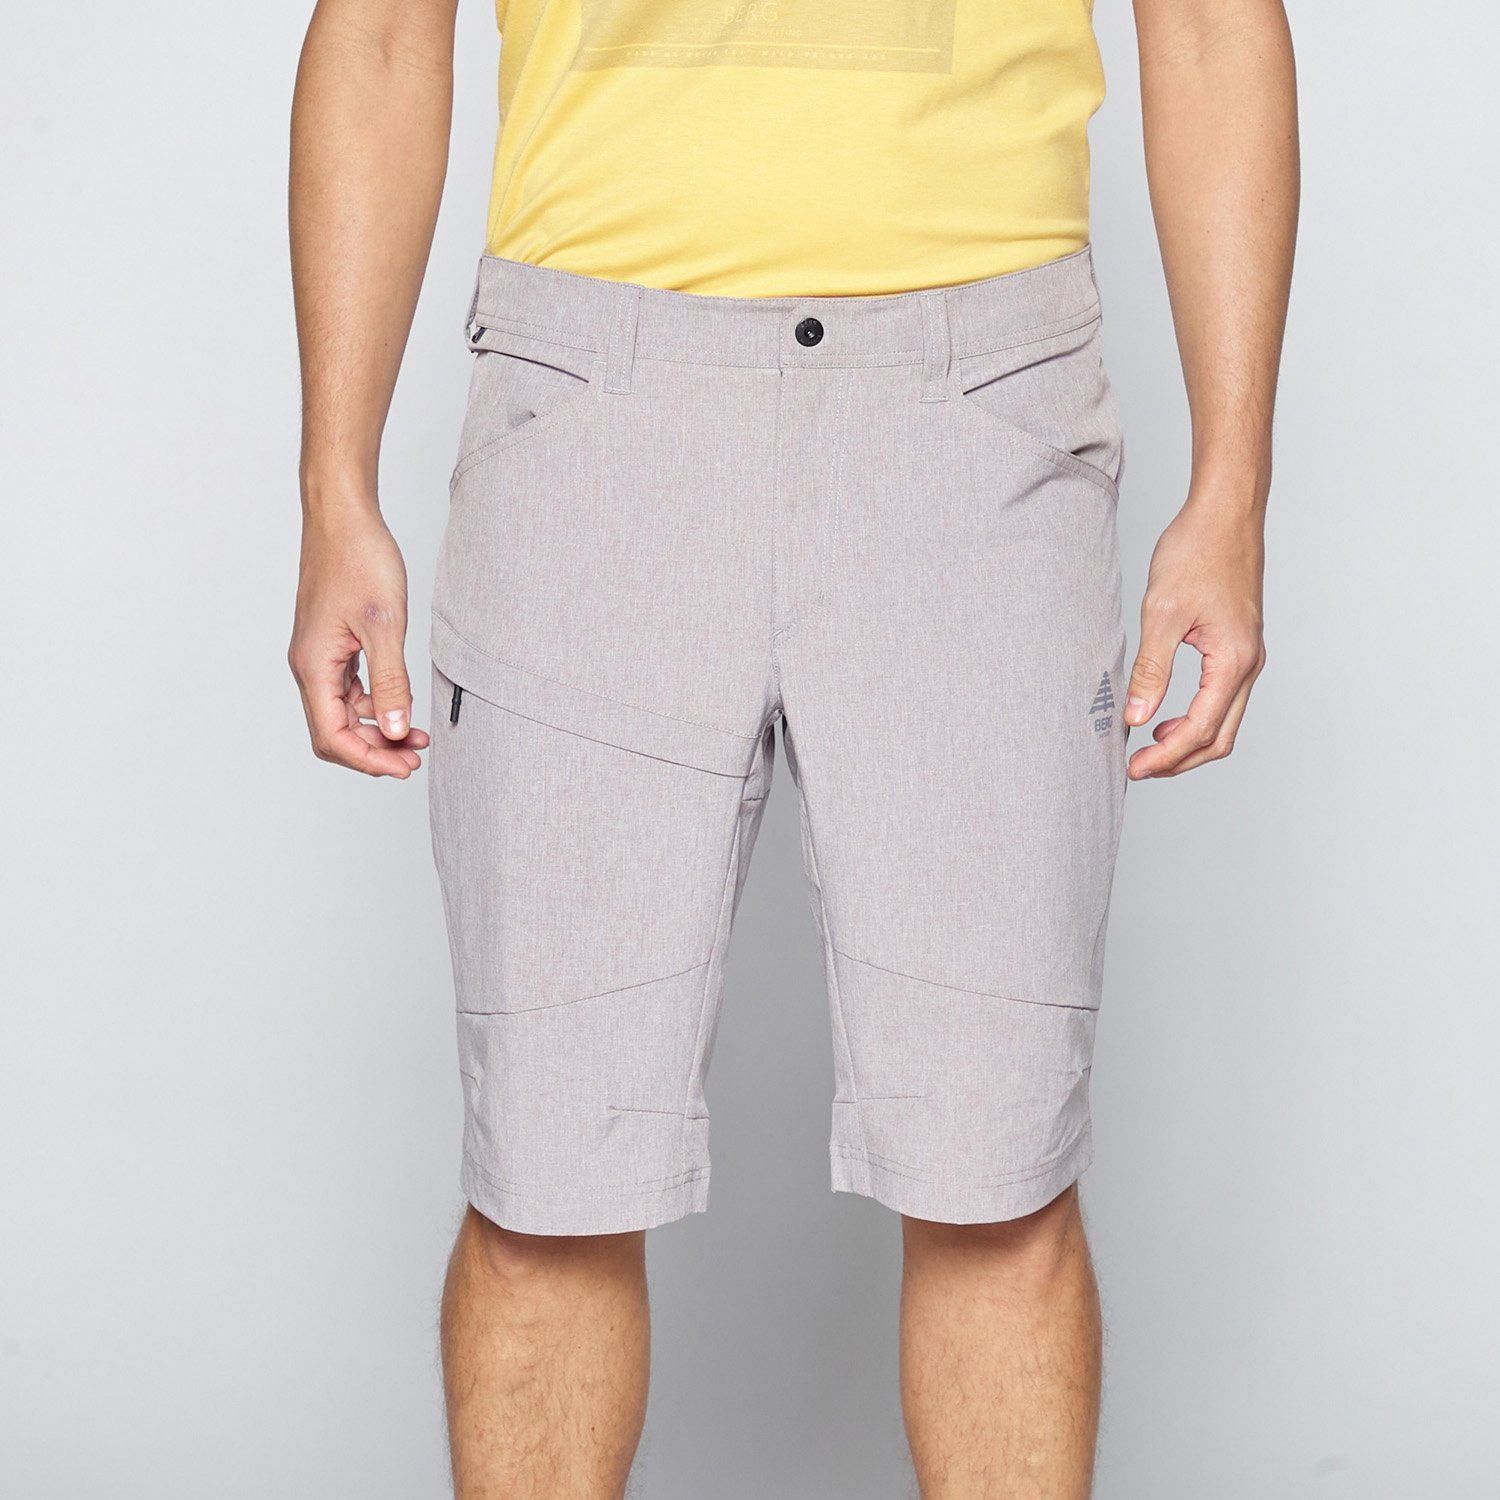 BERG OUTDOOR Herren Vektroid Shorts